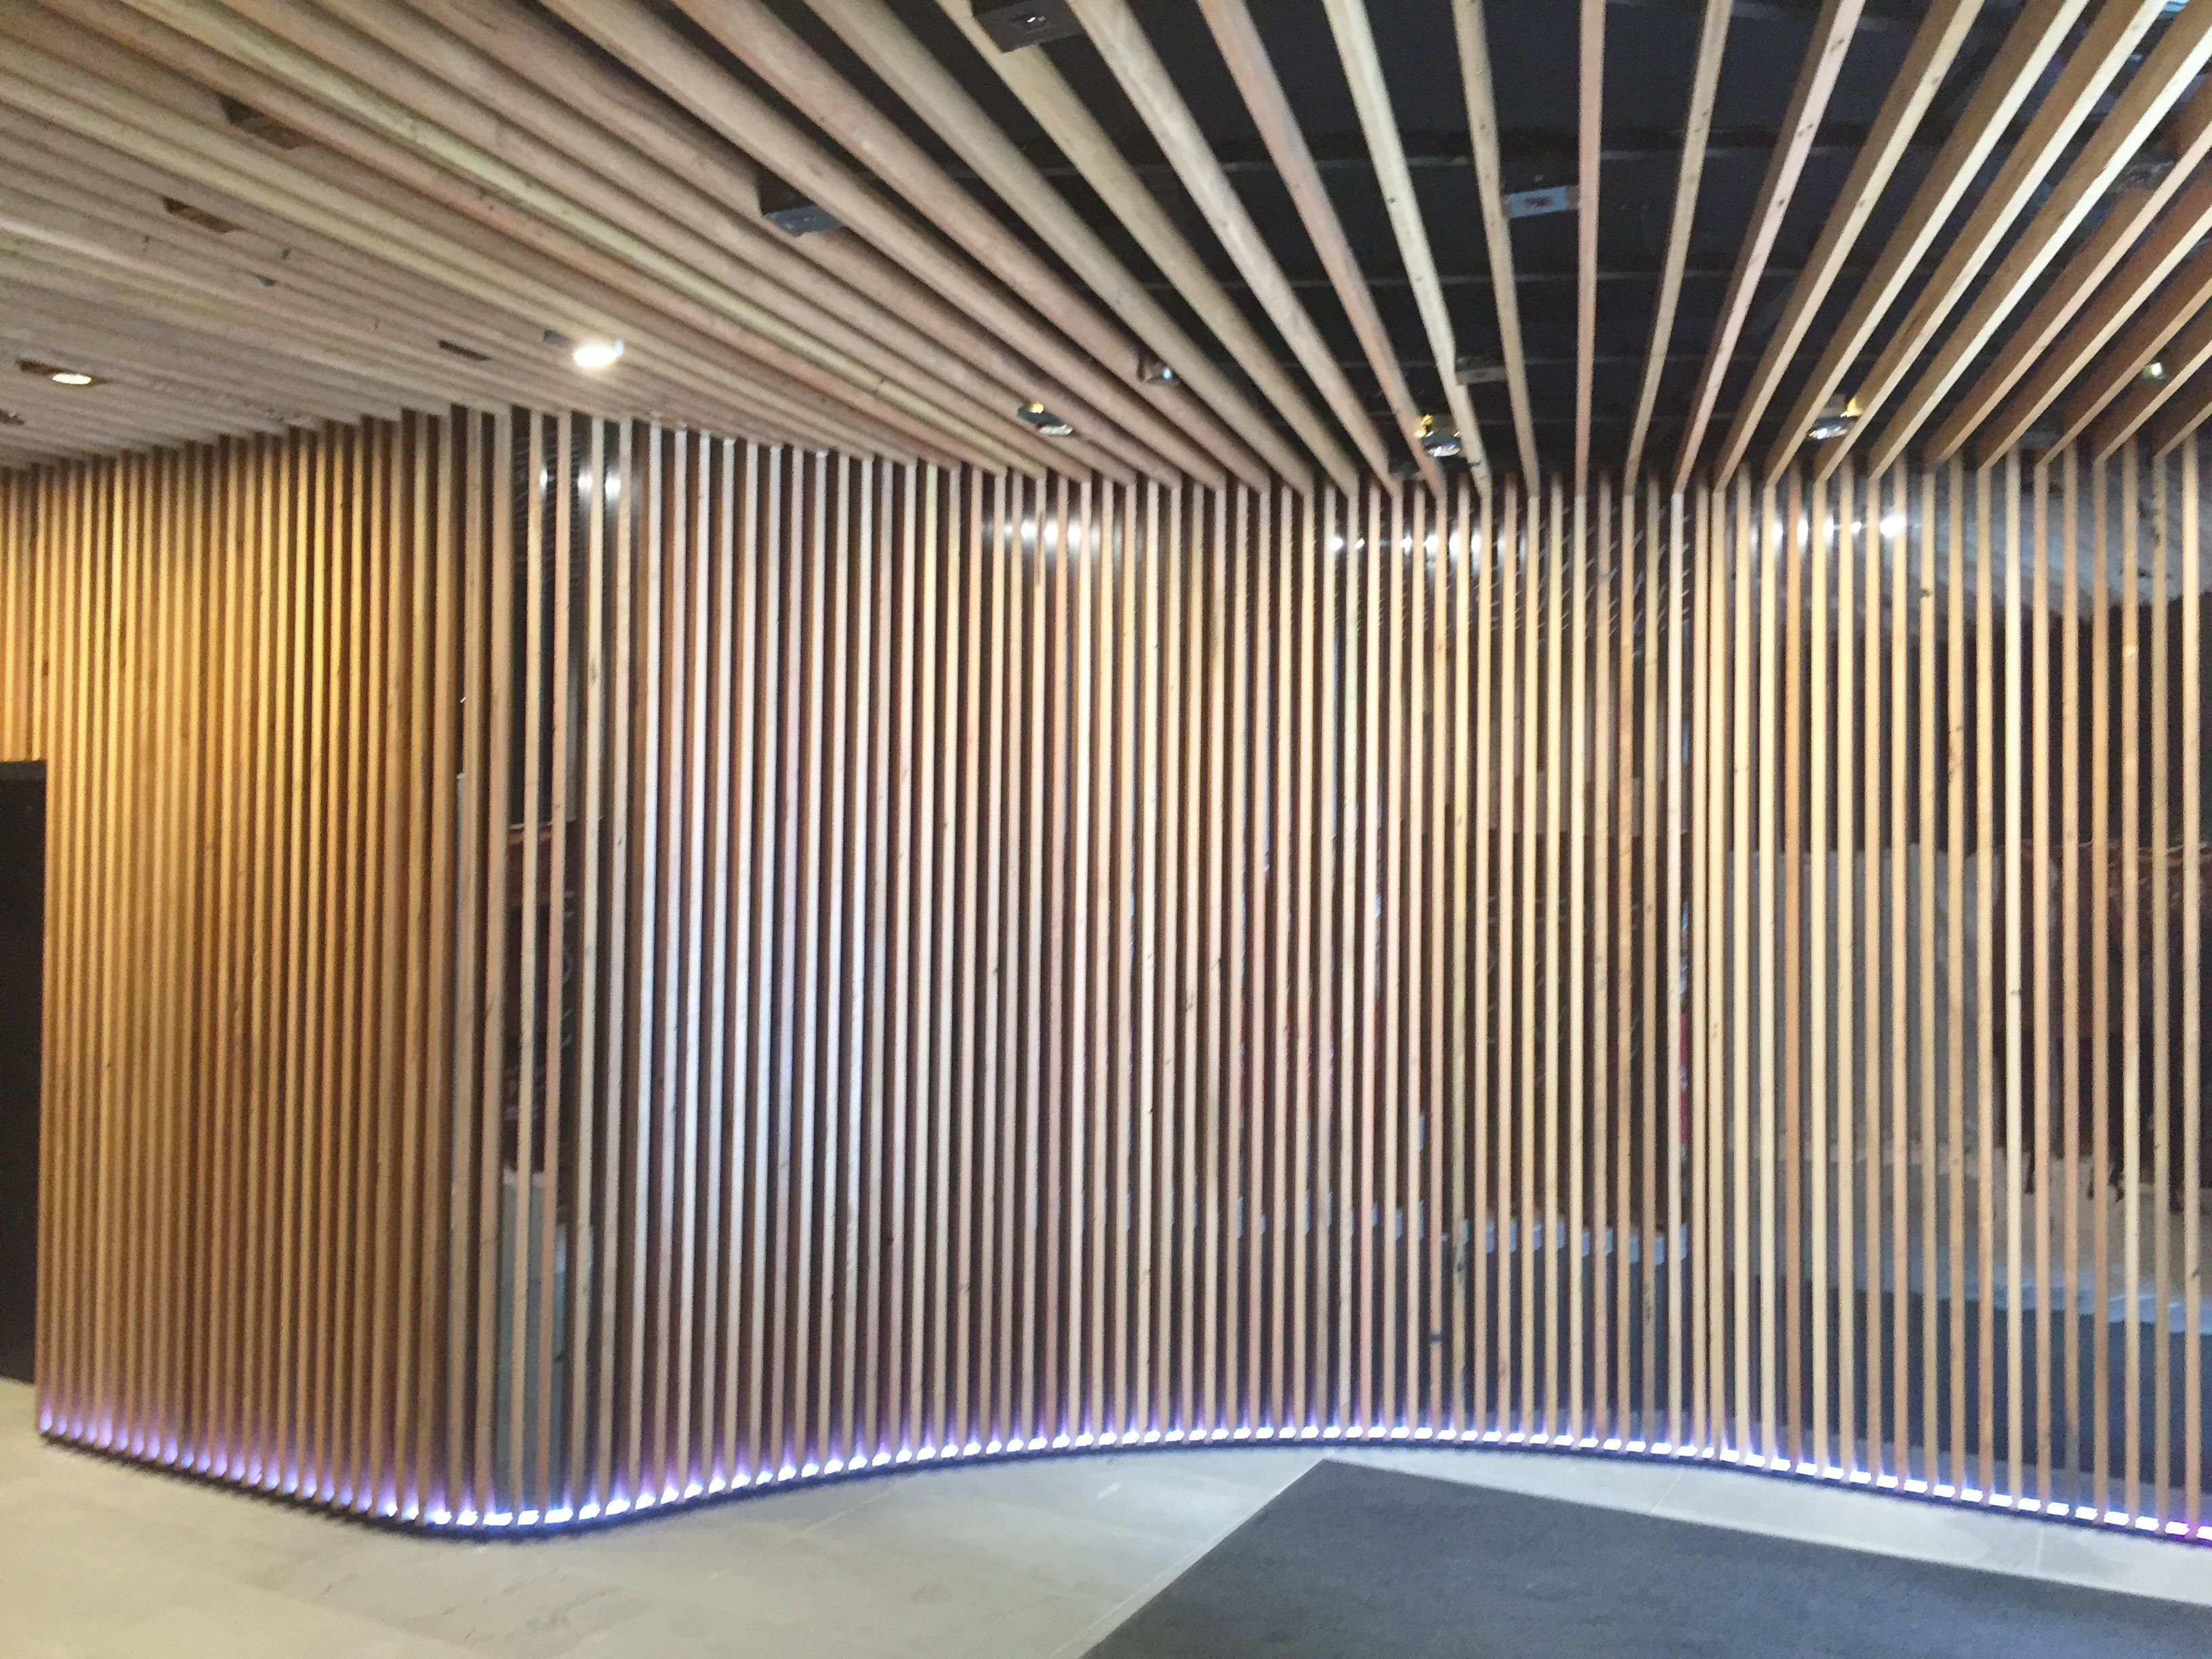 Recycled Timber Wall And Ceiling By Decor Systems Cbd